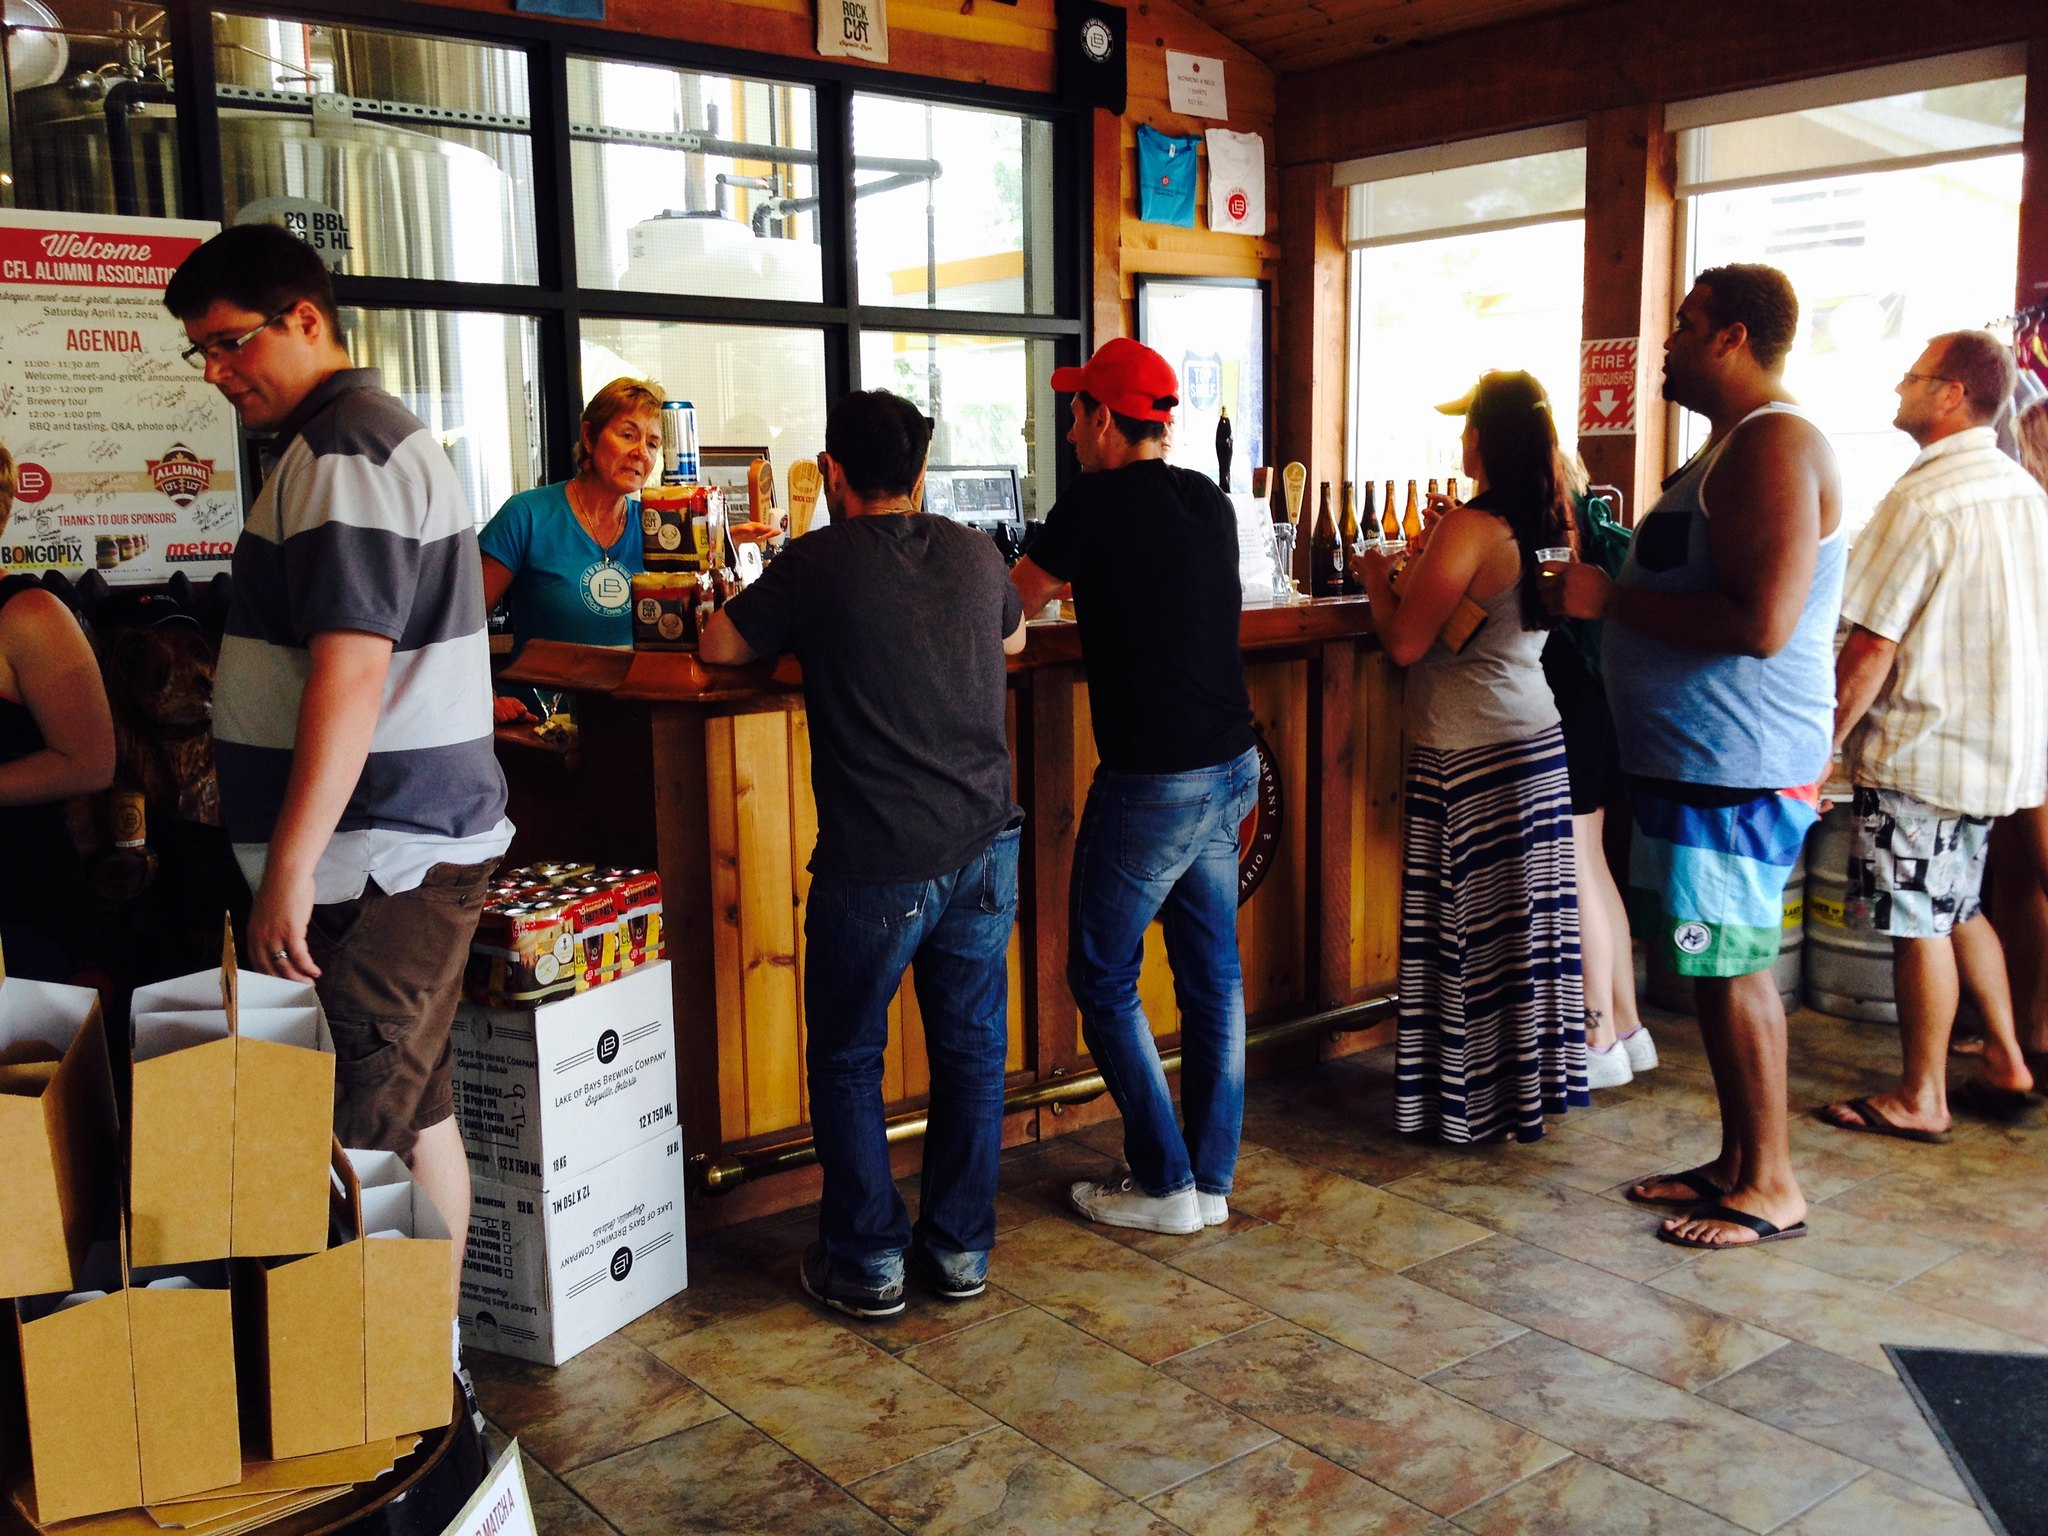 Customers looking for some samples at our bar in the retail space.